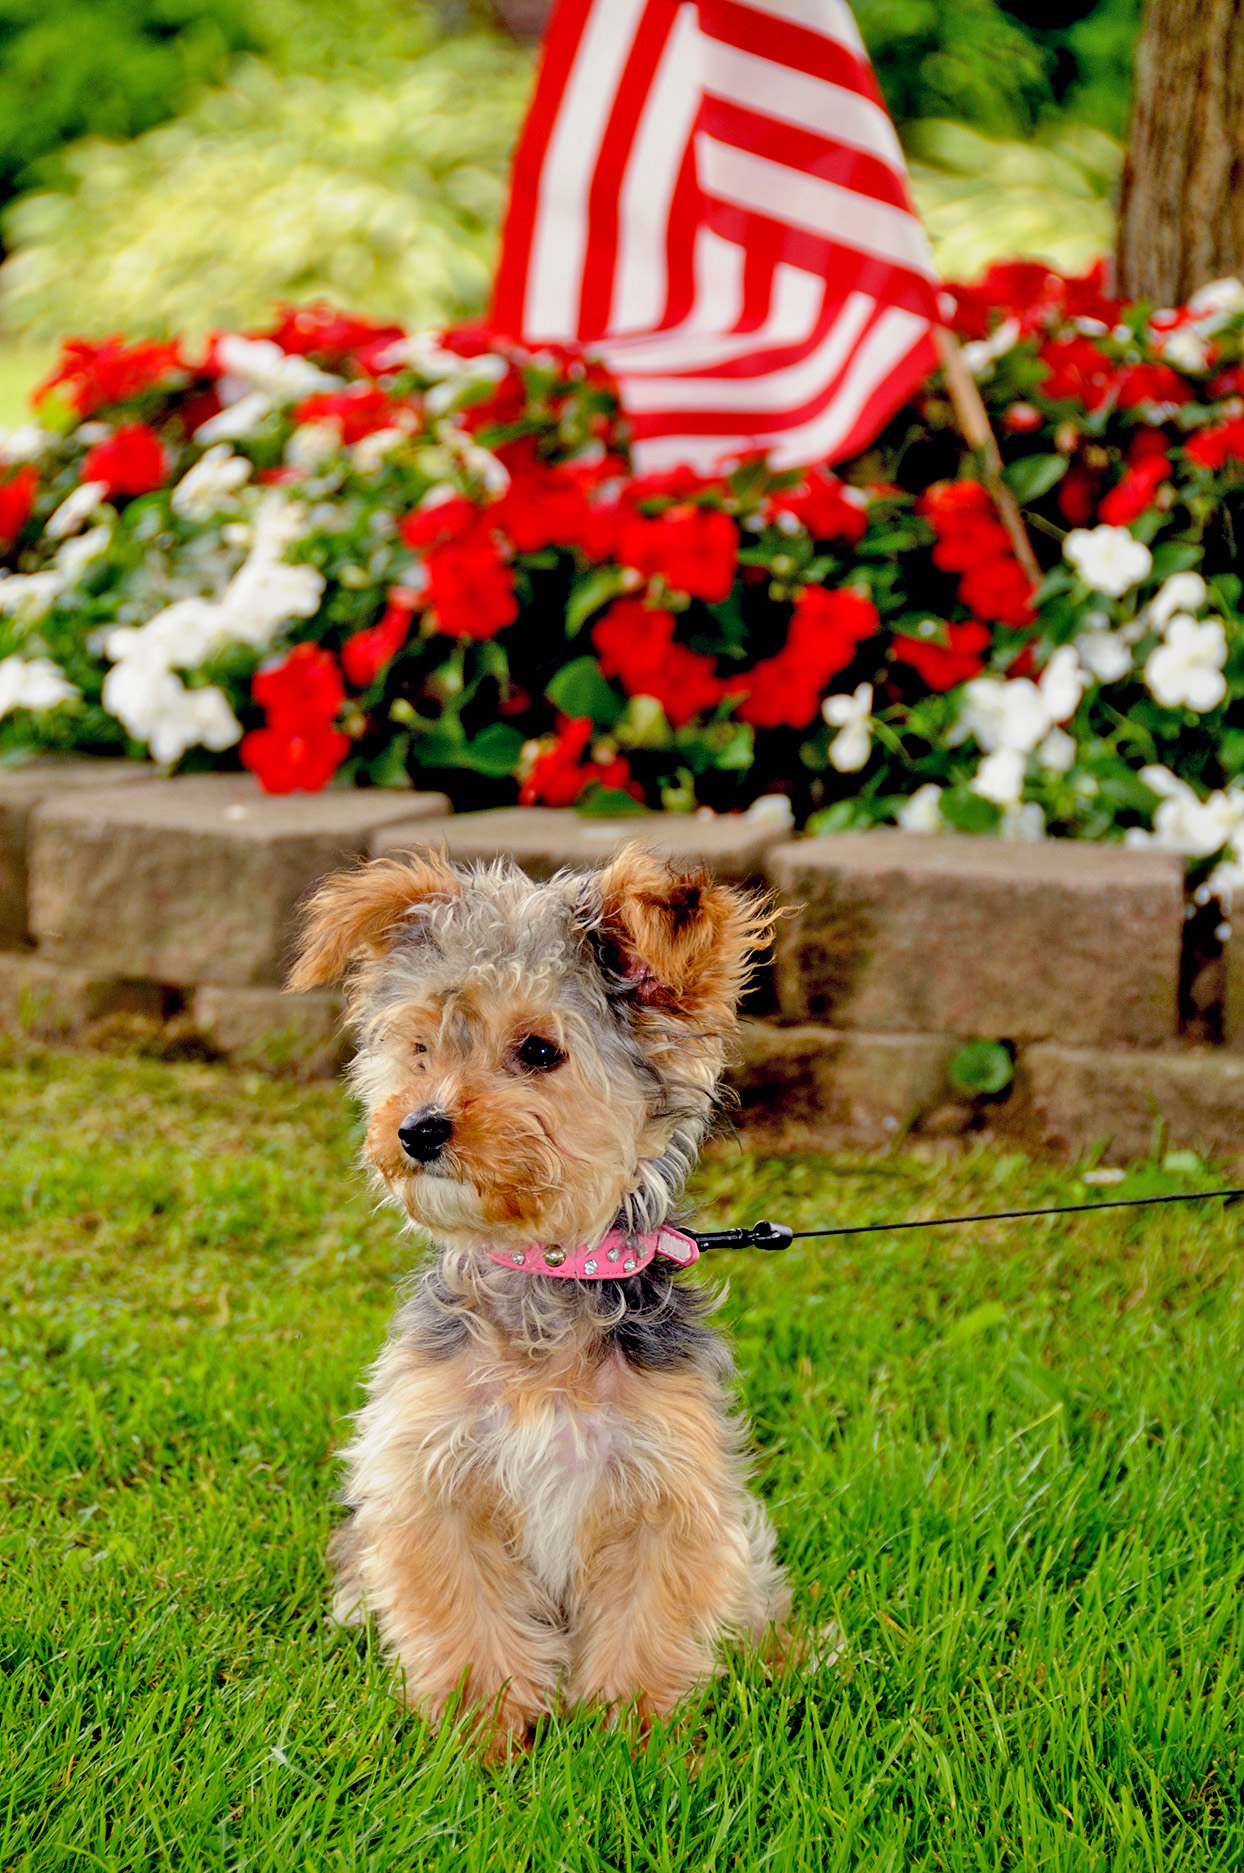 Yorkiepoo sits in grass while on leash